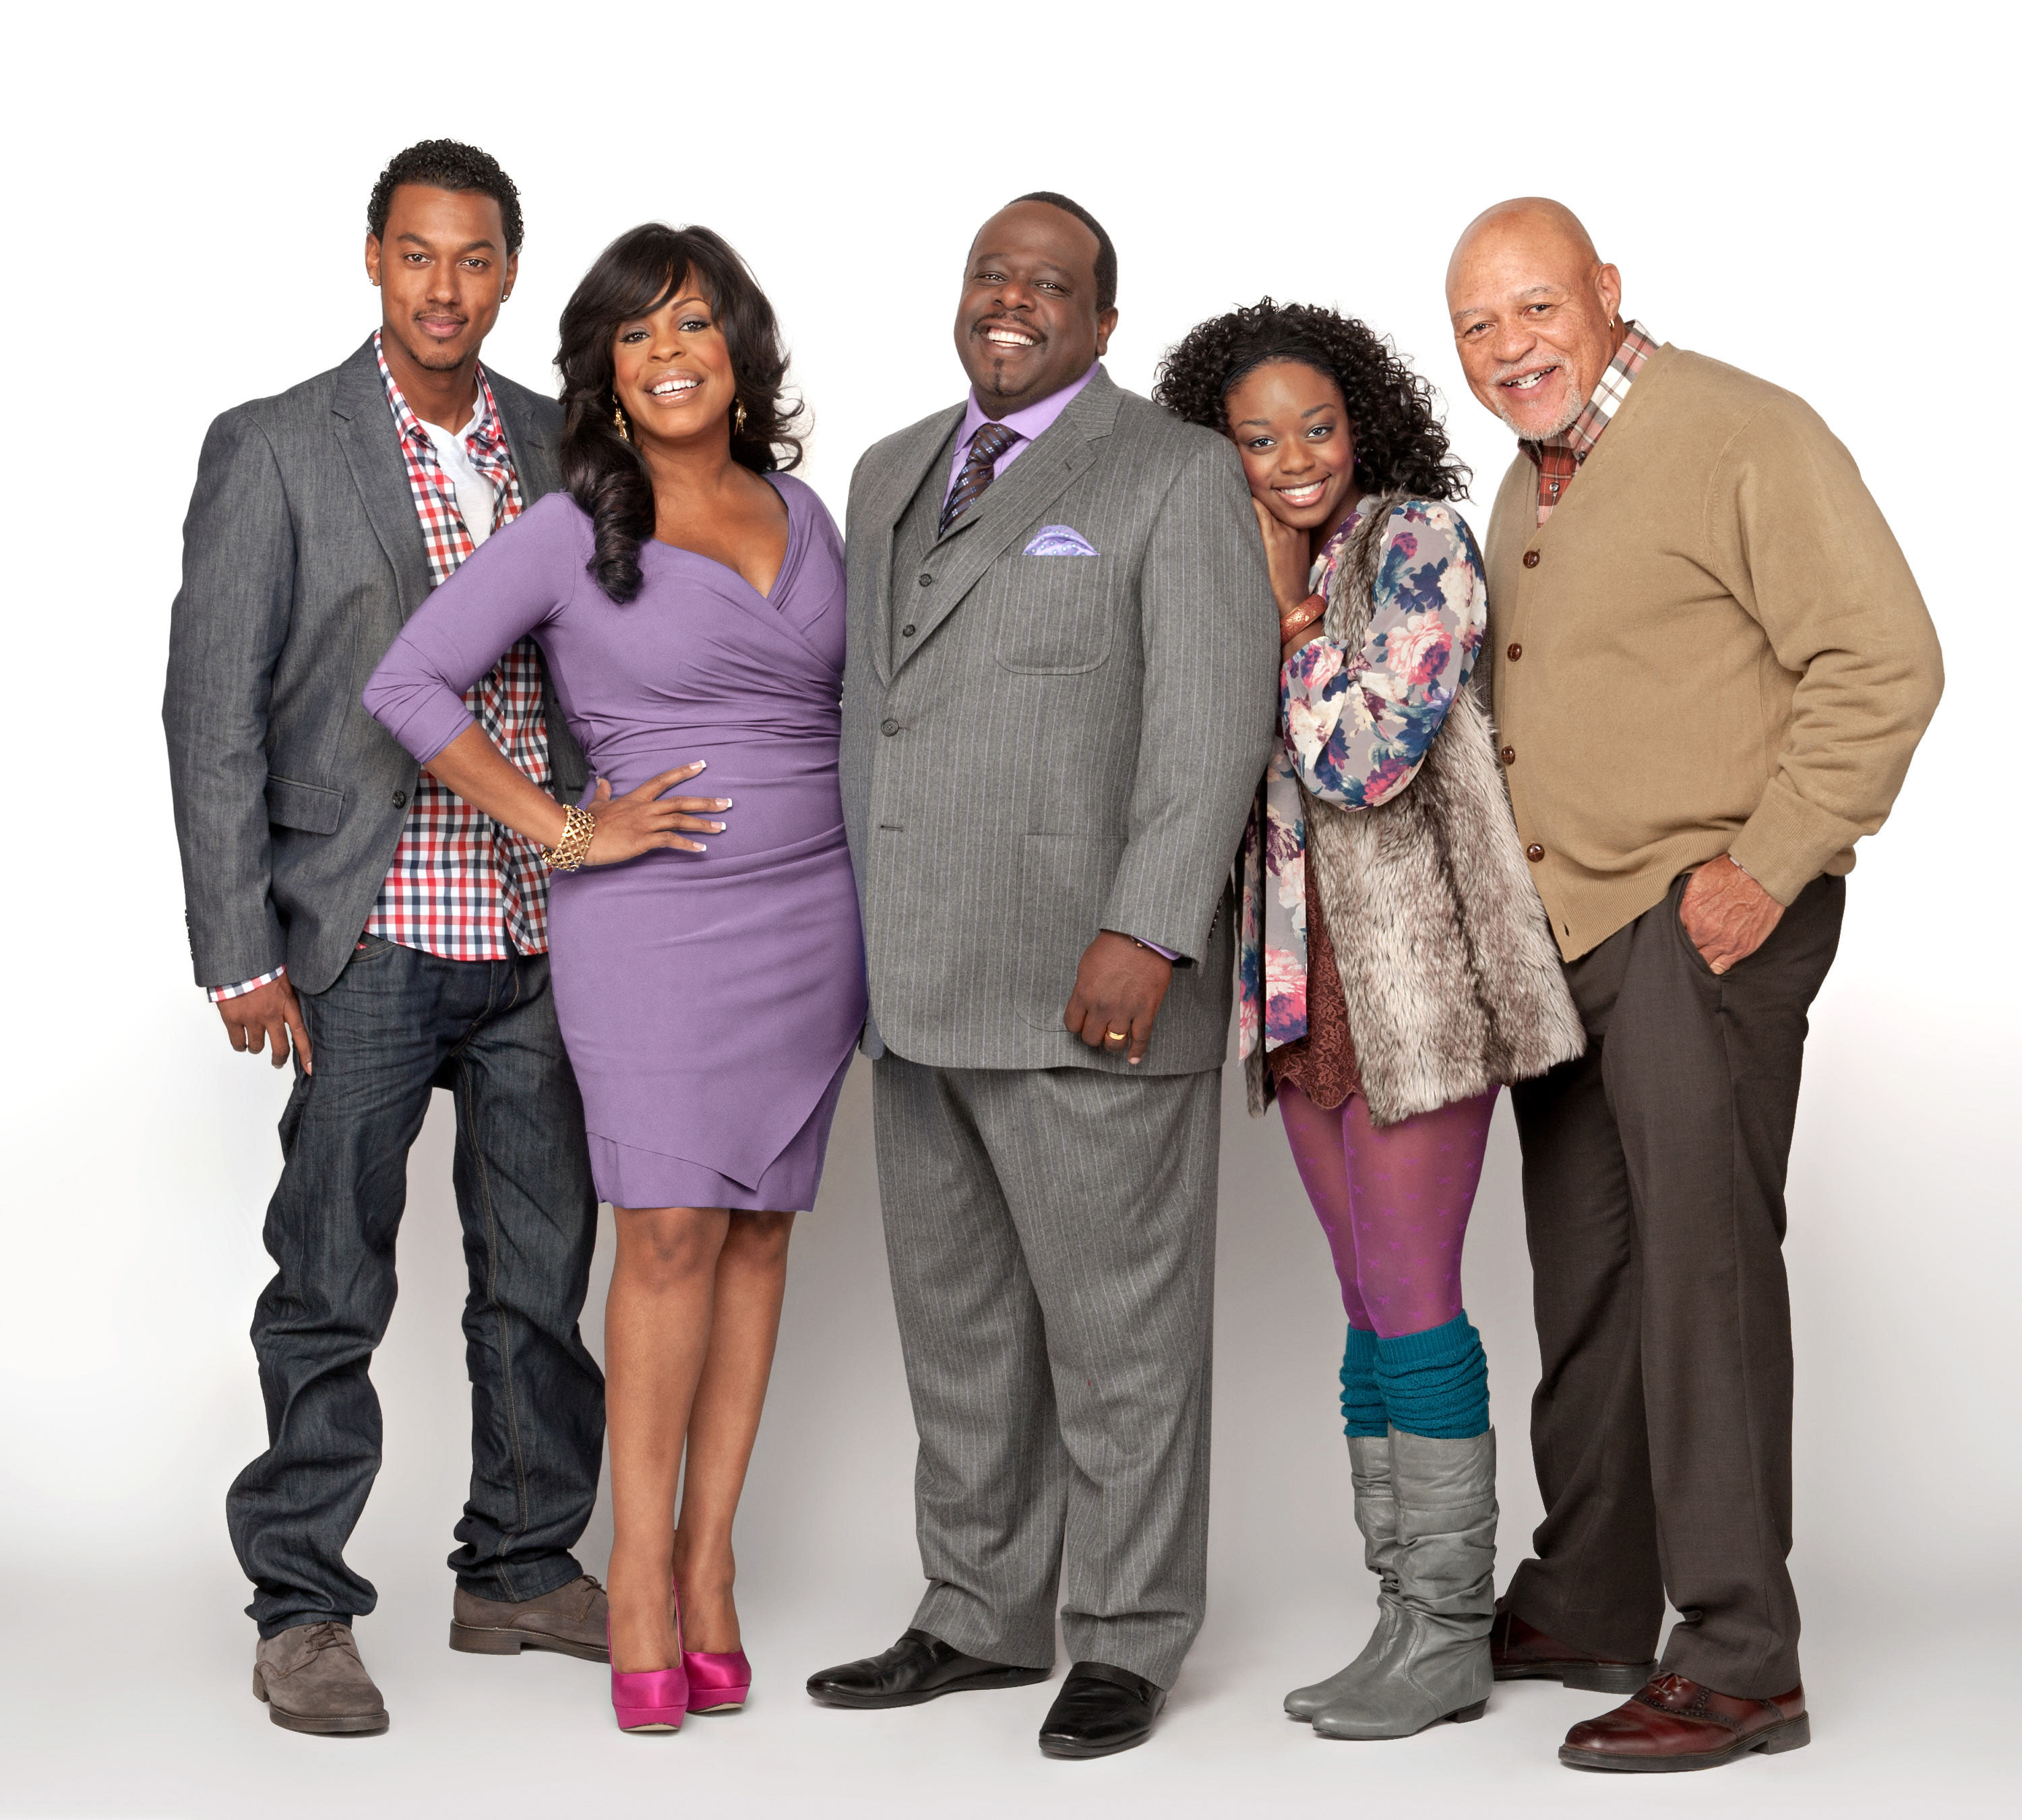 TV Land's 'The Soul Man' cast, (center) Niecy Nash and Cedric the Entertainment.